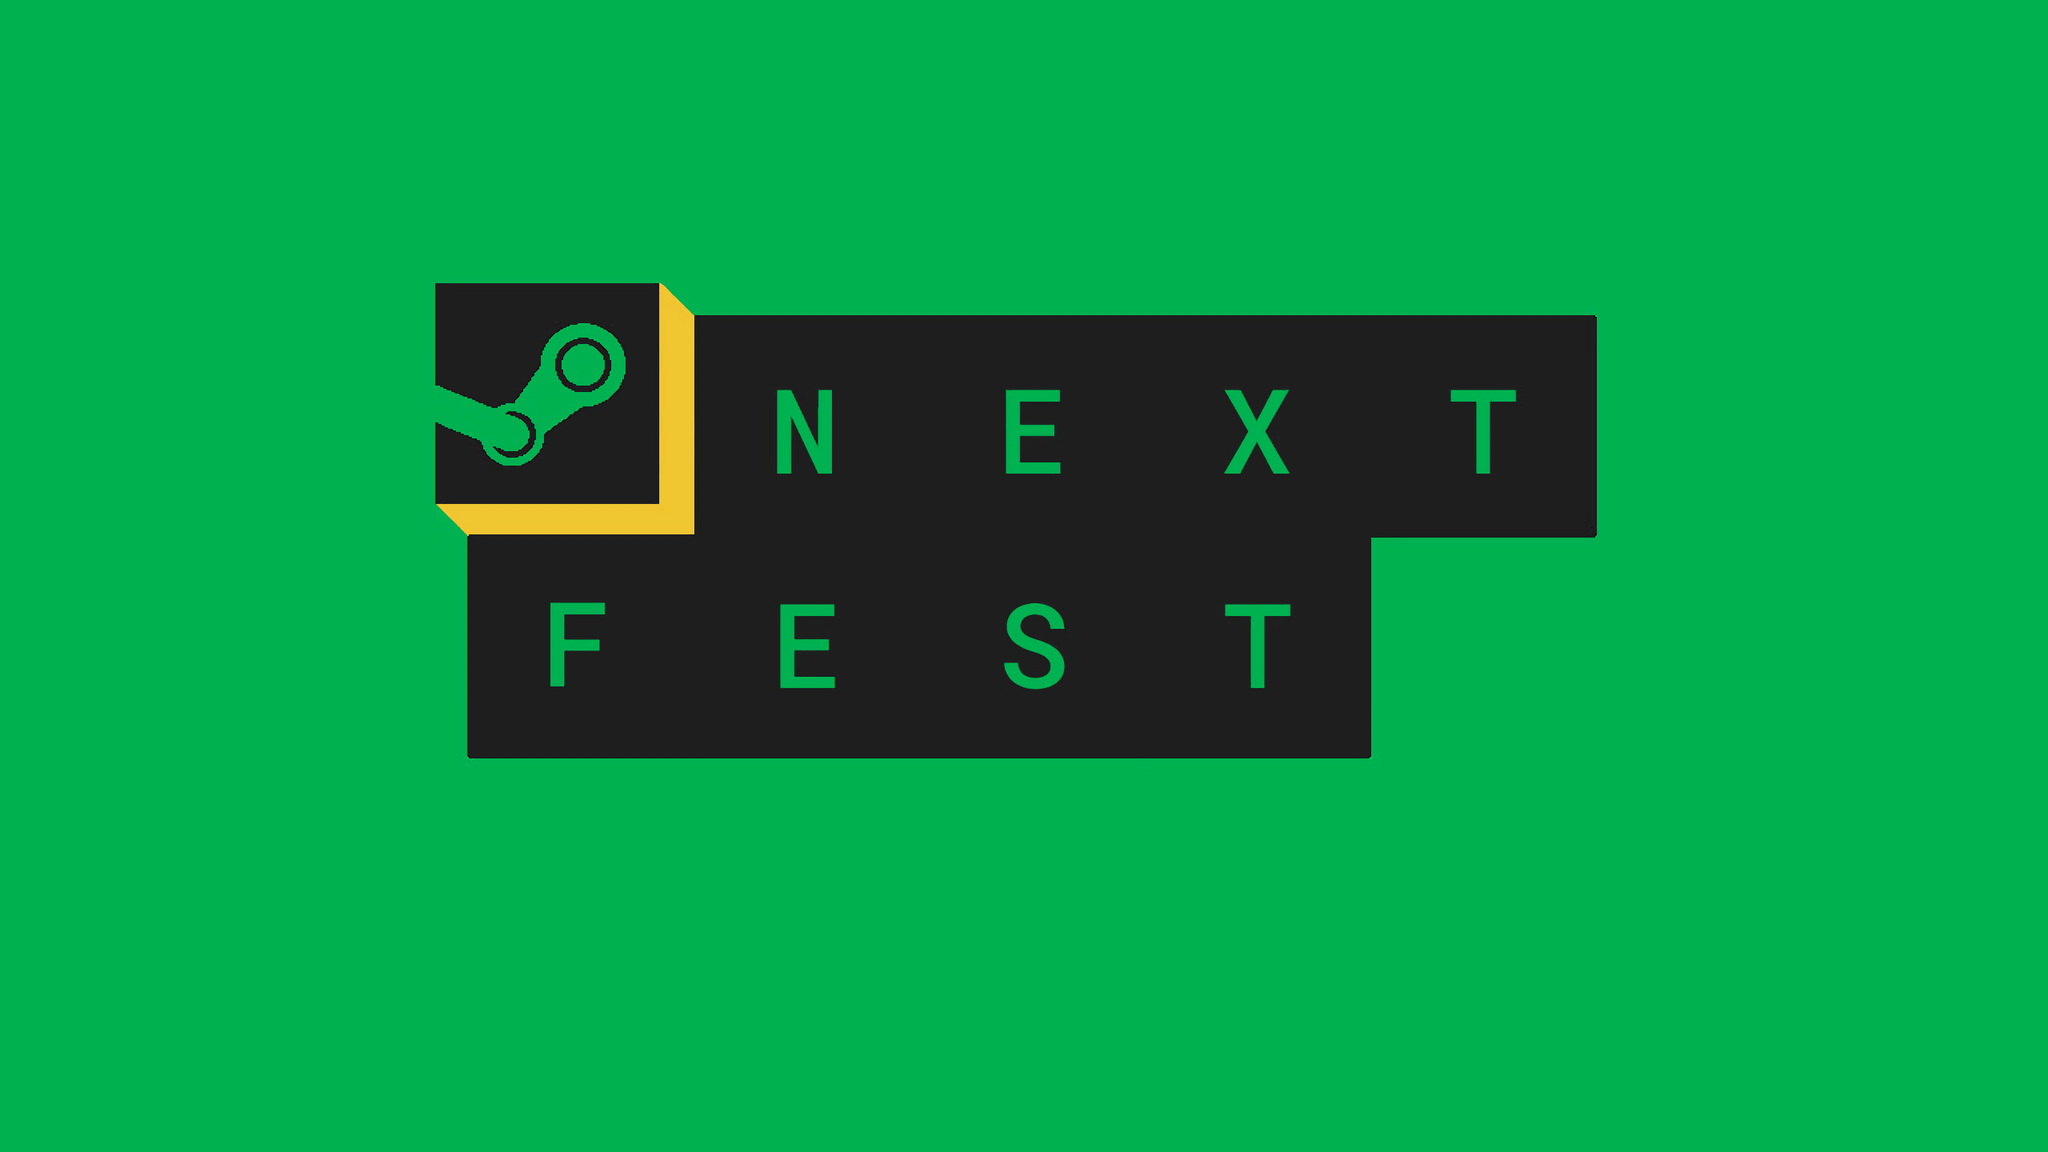 The Steam Game Festival is now the Steam Next Fest, and it returns in June